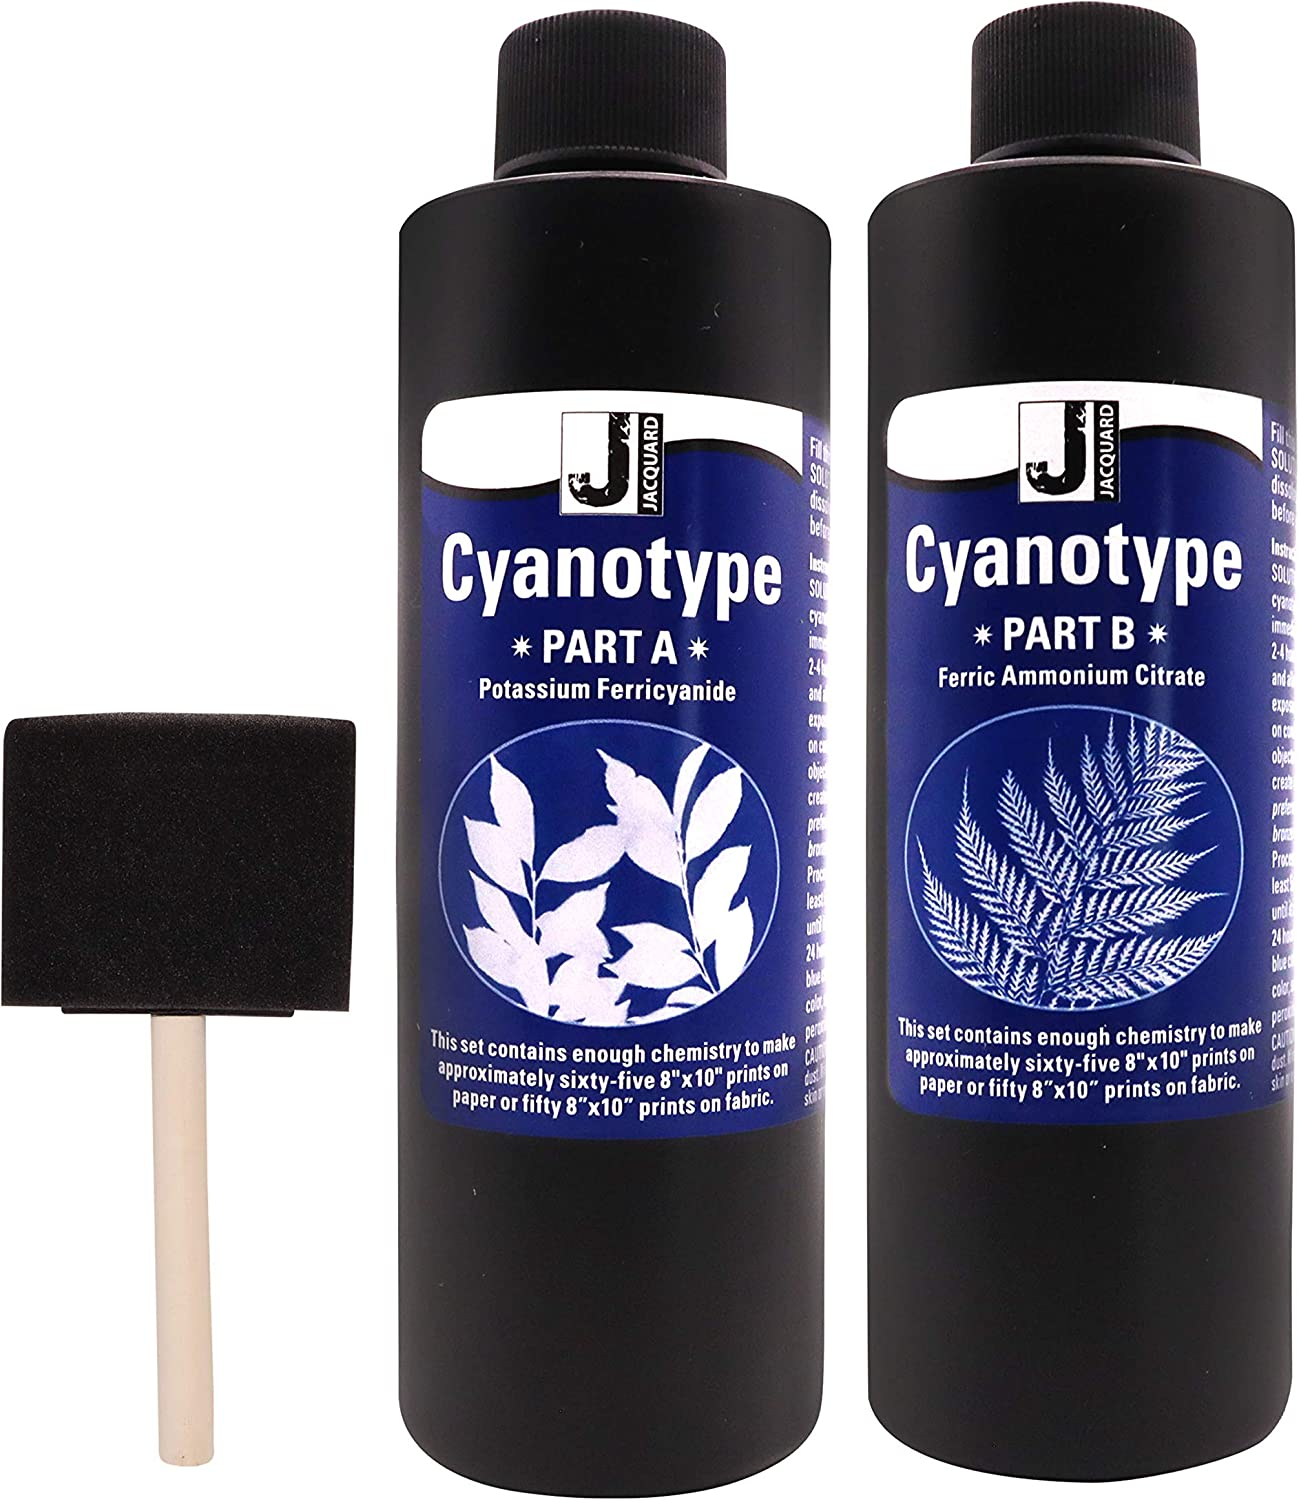 Jacquard Cyanotype - for Photographic Blueprints on Paper and Fabric - 2 Component Sensitizer Set - Bundled with Moshify Sponge Brush for Application